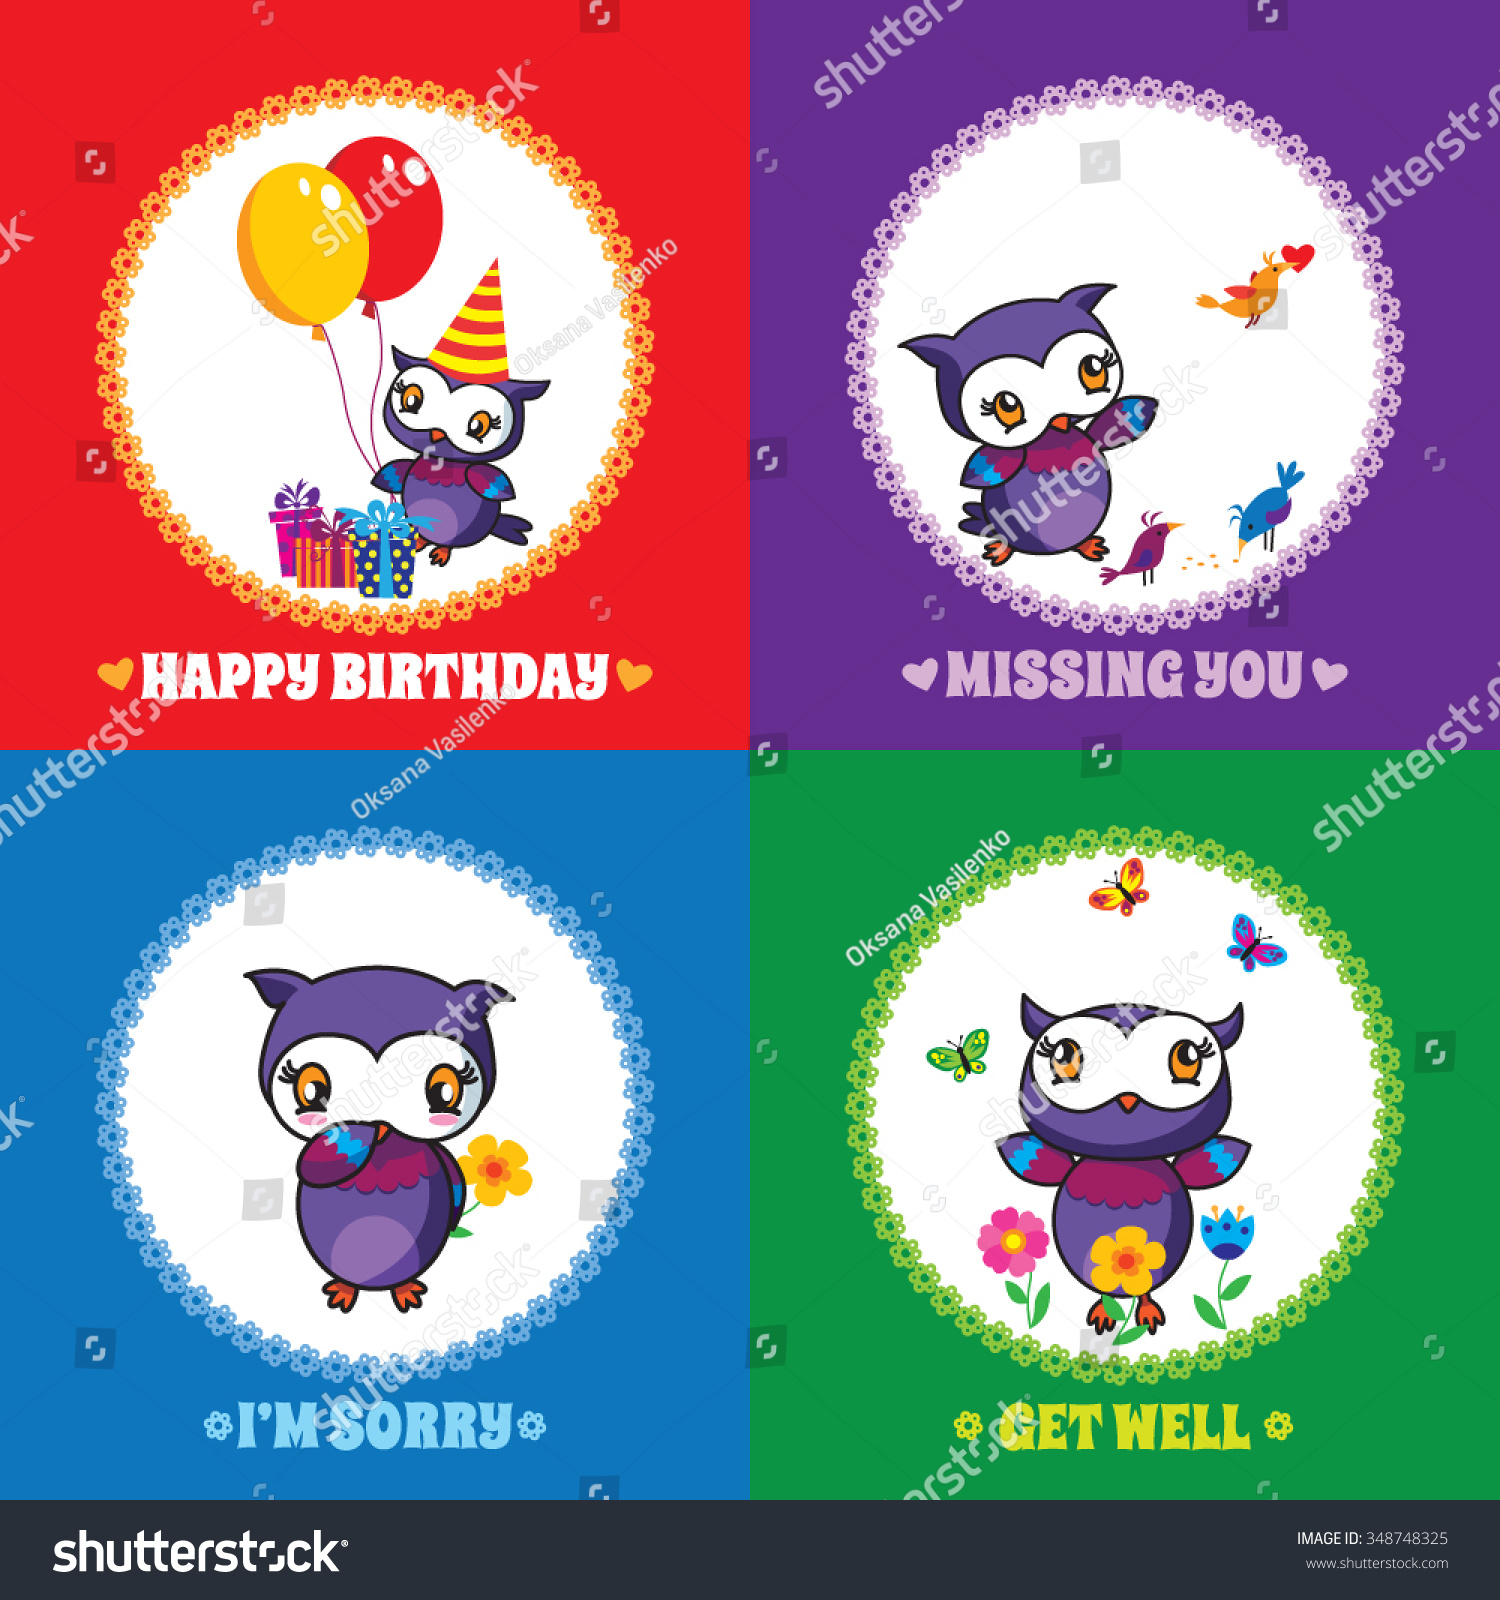 Set 1 Colourful Greeting Cards Cute Stock Vector Hd Royalty Free